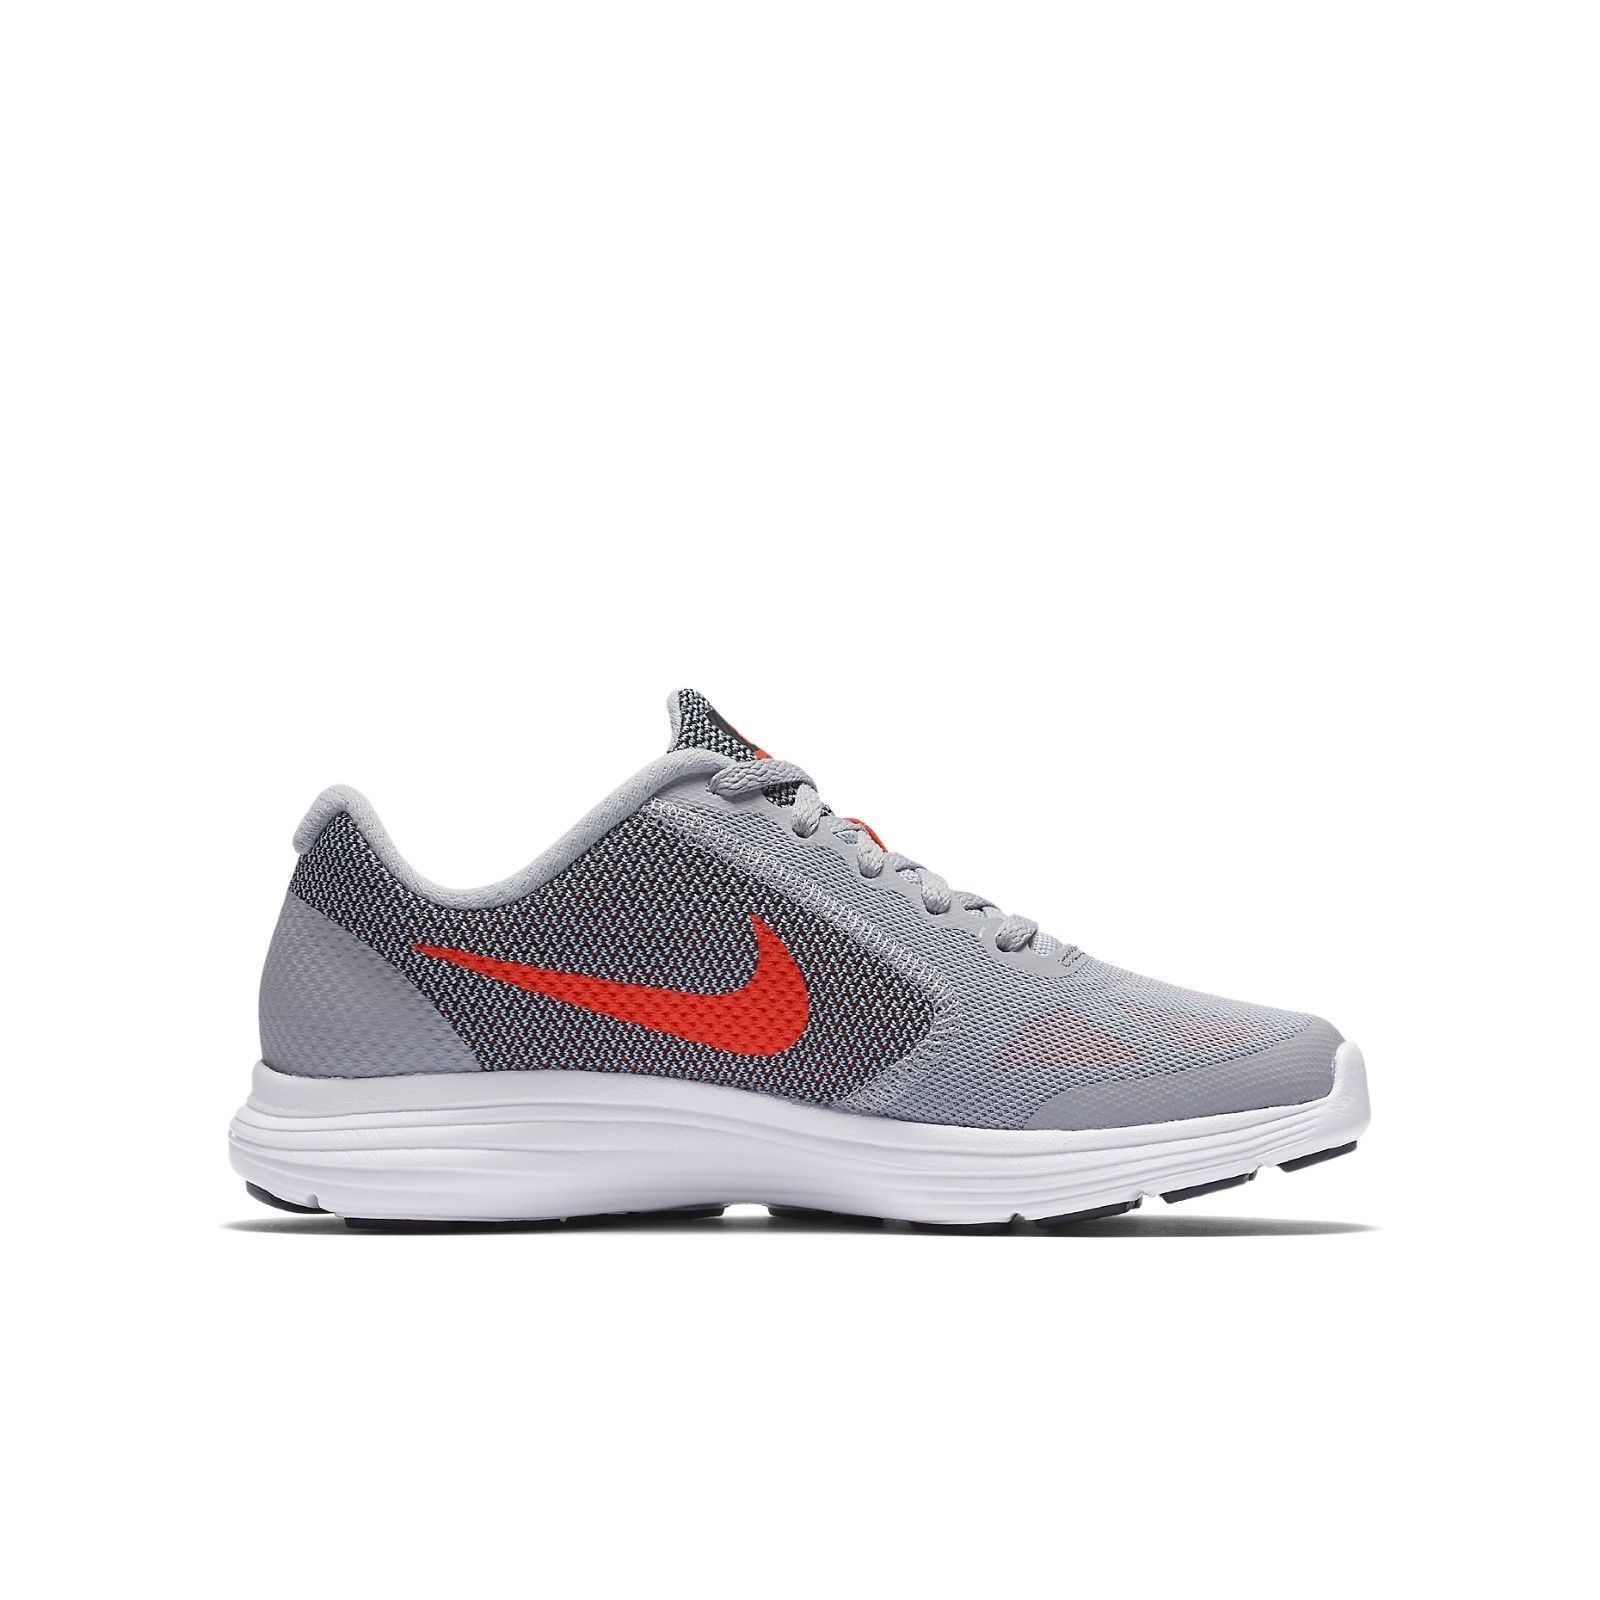 big sale c1cab adaa7 New boys Nike sneakers youth 7 Revolution 3 Gray Orange 819413 athletic  shoes